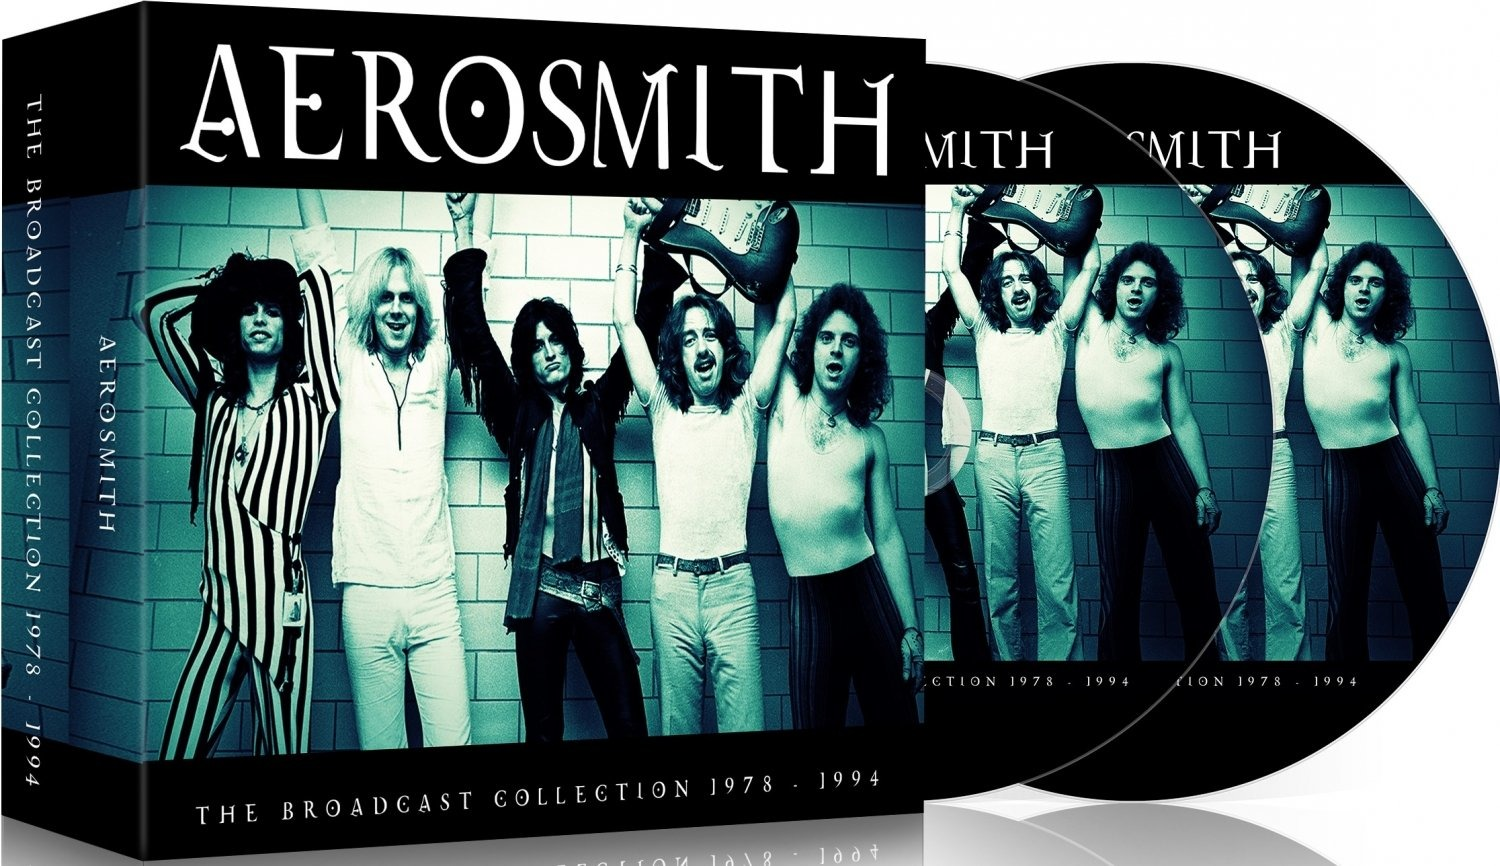 The Broadcast Collection 1978 - 1994 - Aerosmith - Musik - CULT LEGENDS - 8717662578175 - 1970